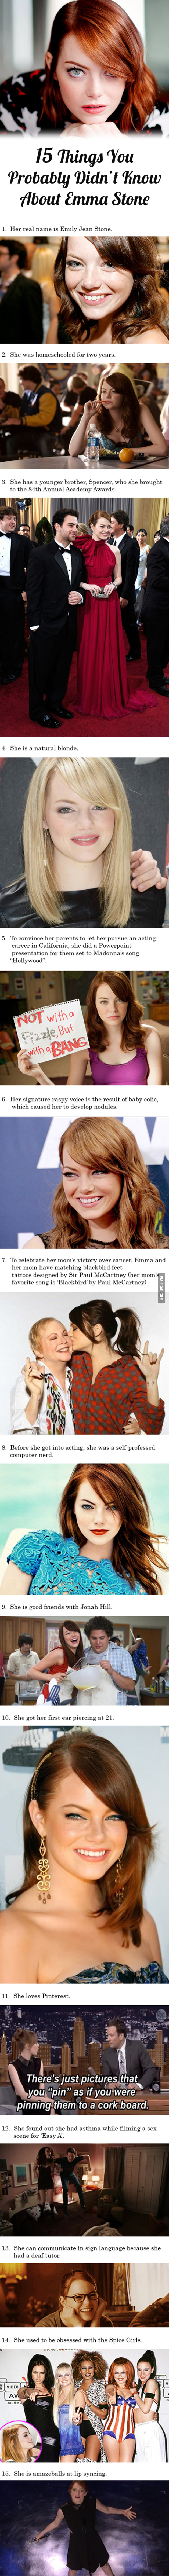 15 things you may not know about my Queen.